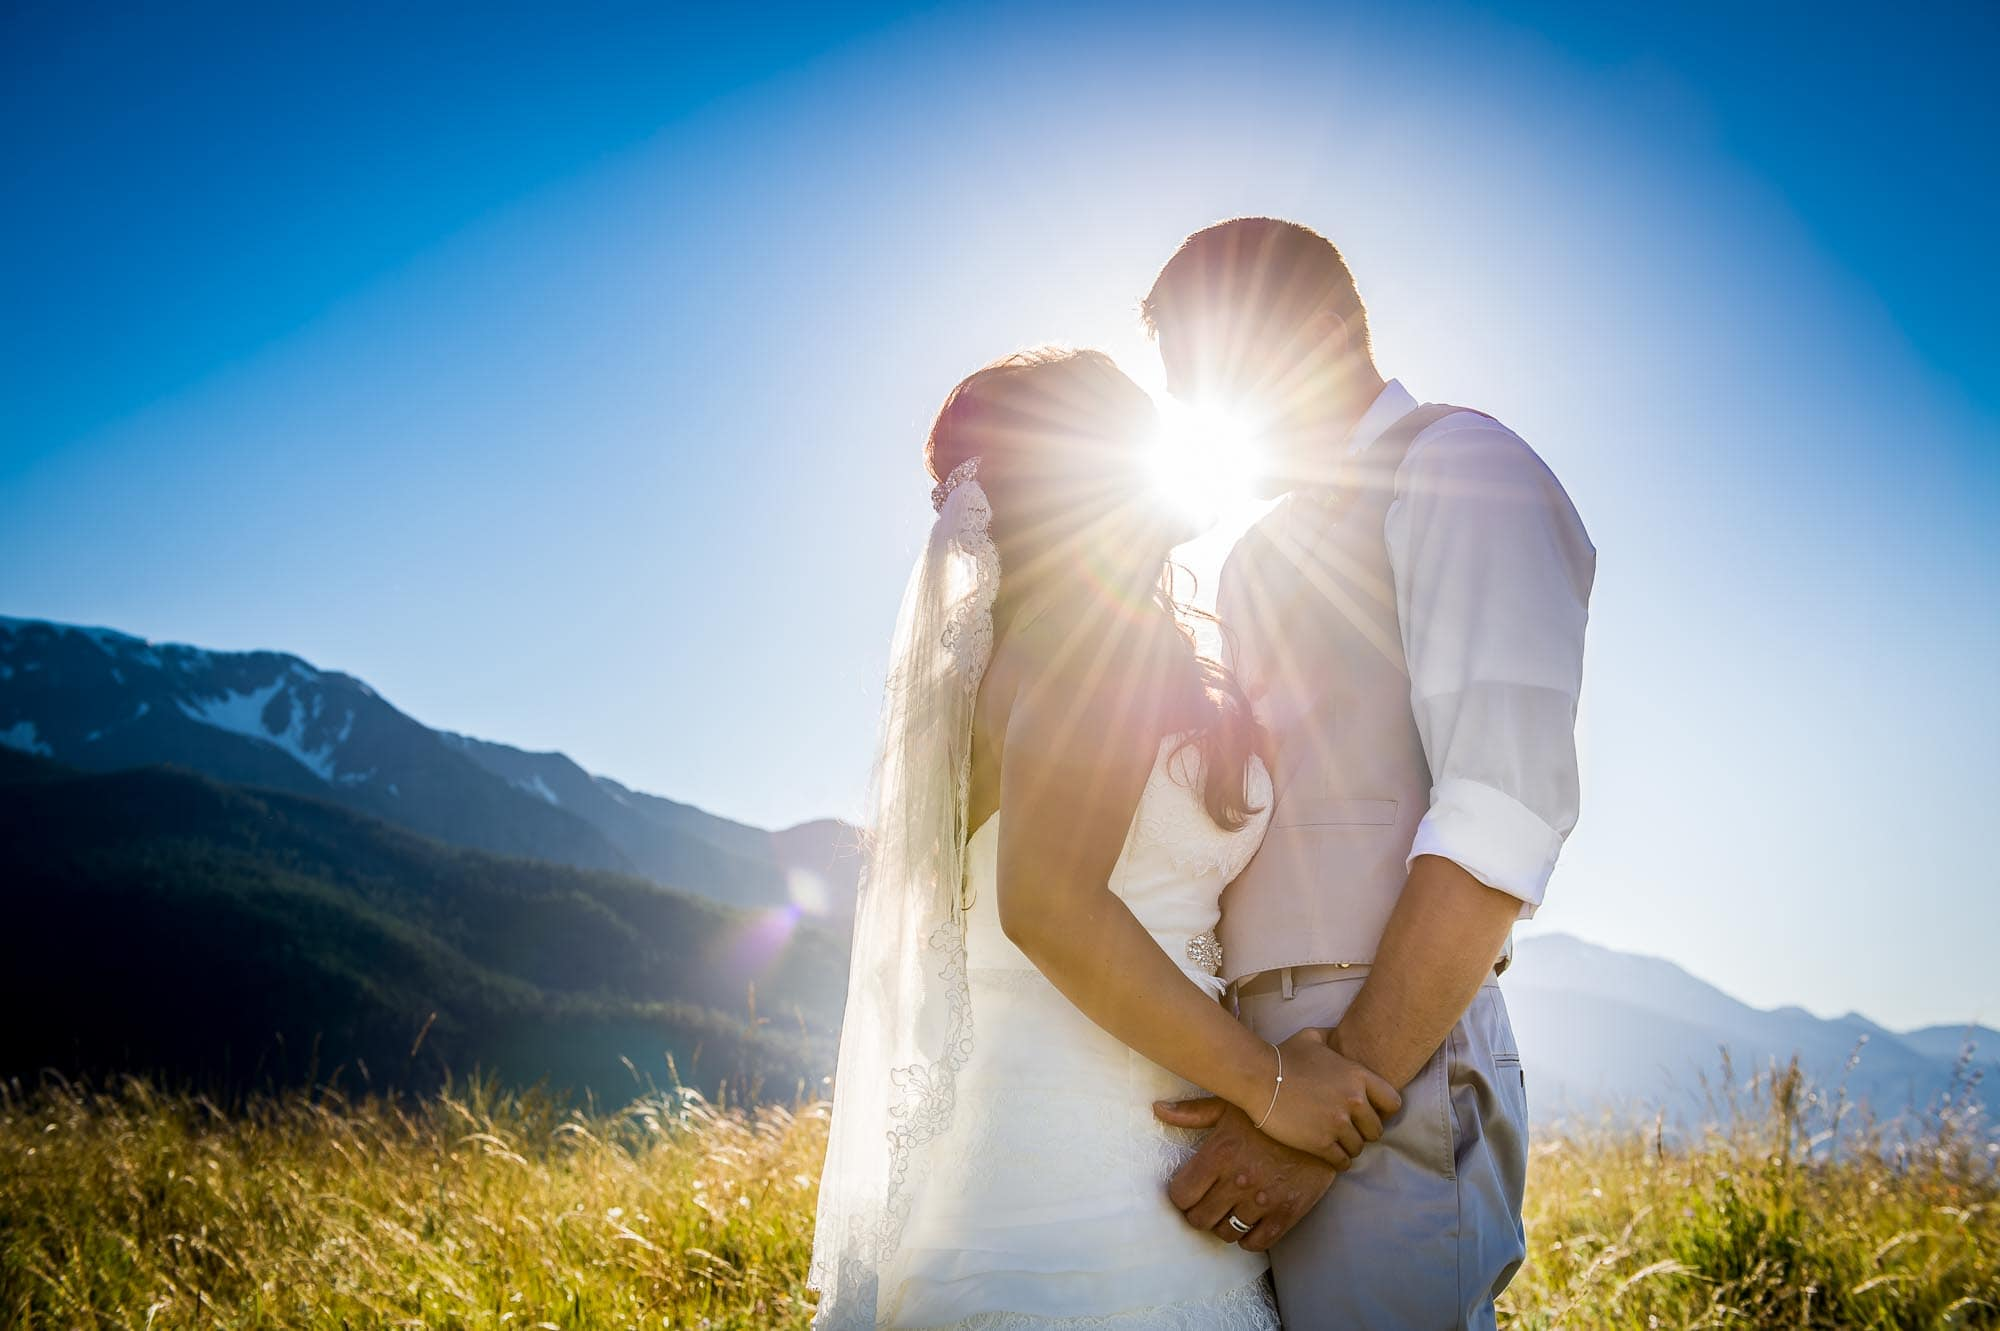 Destination wedding kiss in Joseph, Oregon with sun-flare and the Wallowa mountains in the background